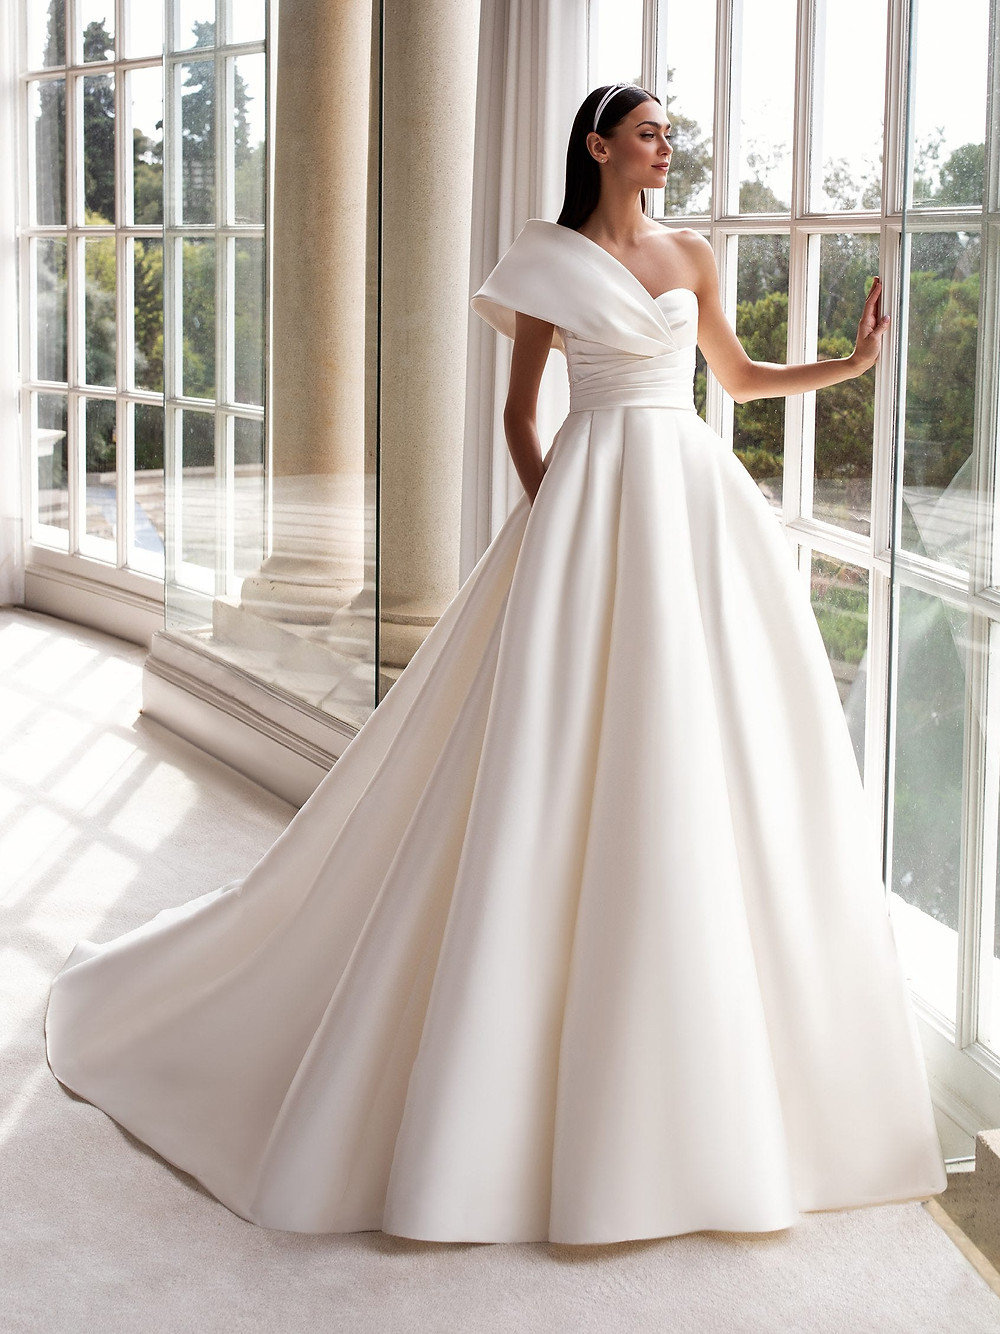 A one shoulder, ball gown wedding dress with large skirt